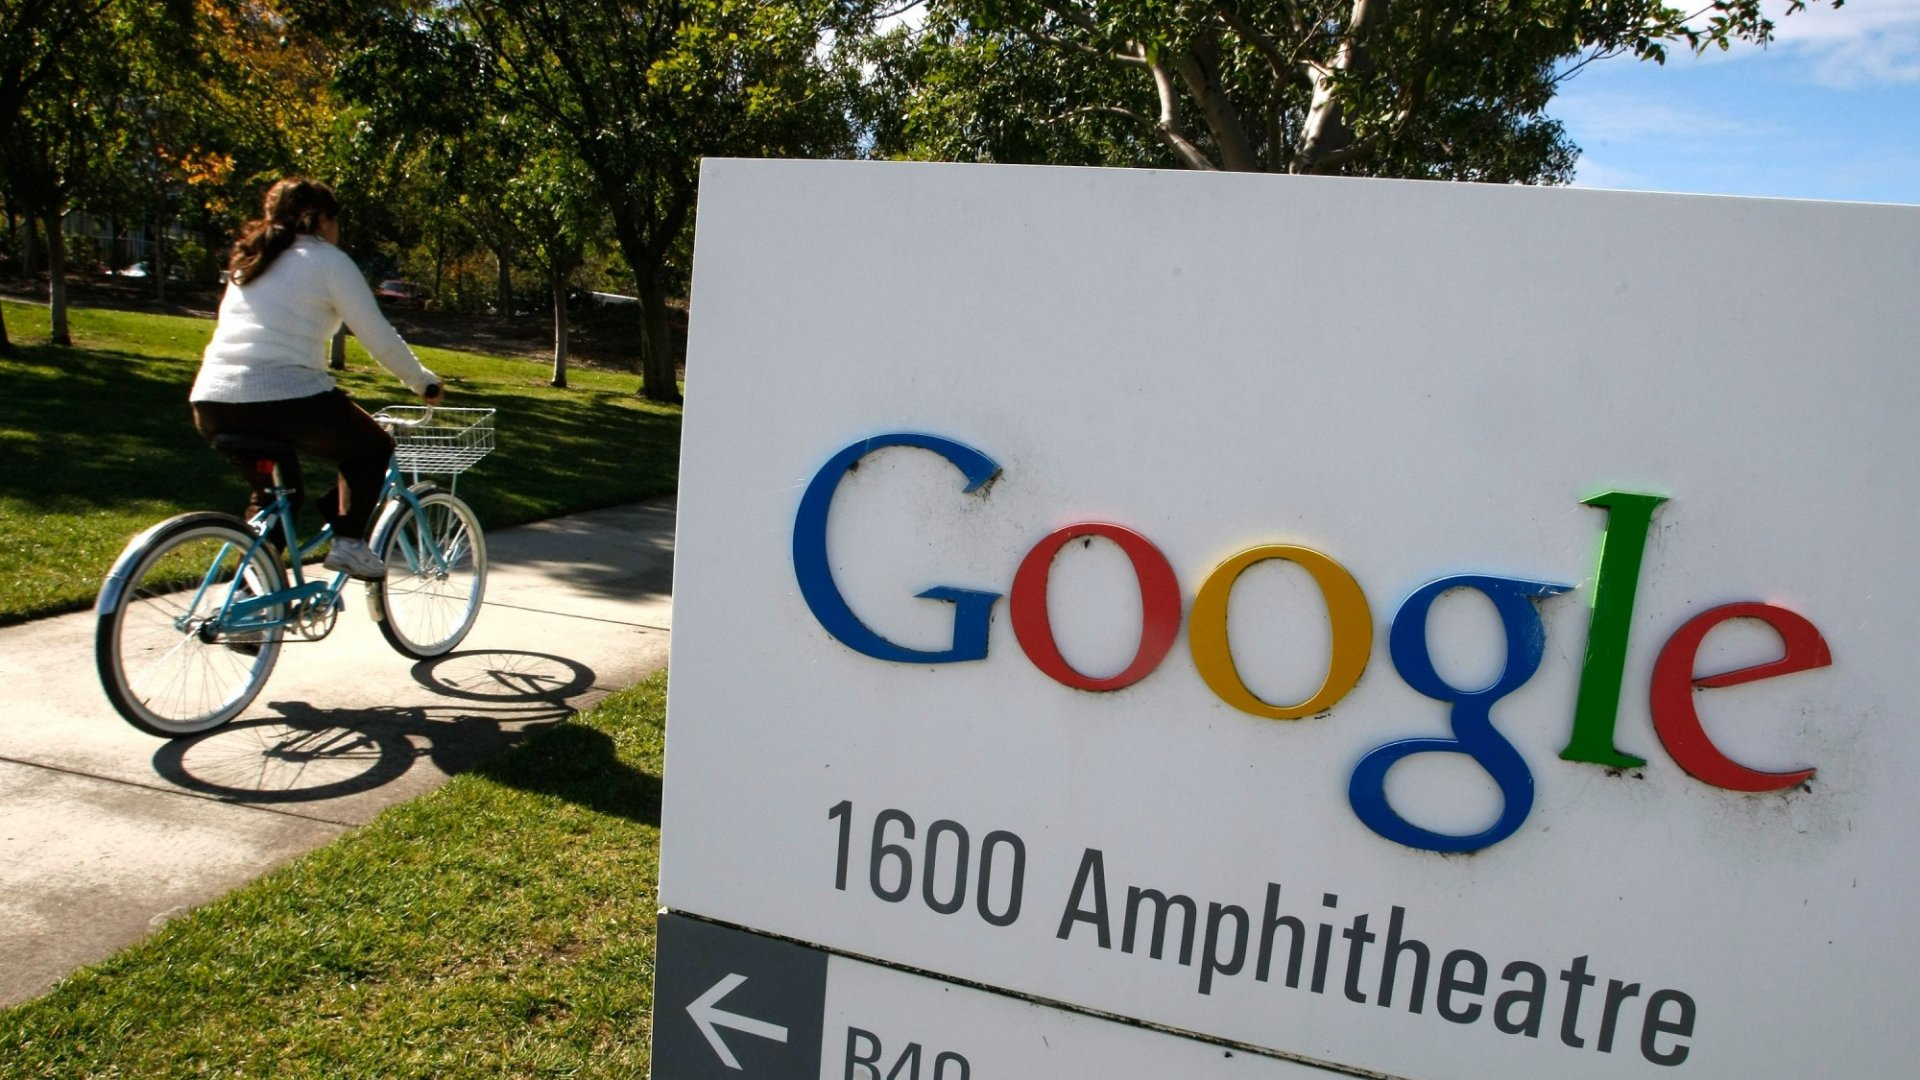 Google Defends Accusations of Gender Pay Gap by Outlining Its Compensation Method